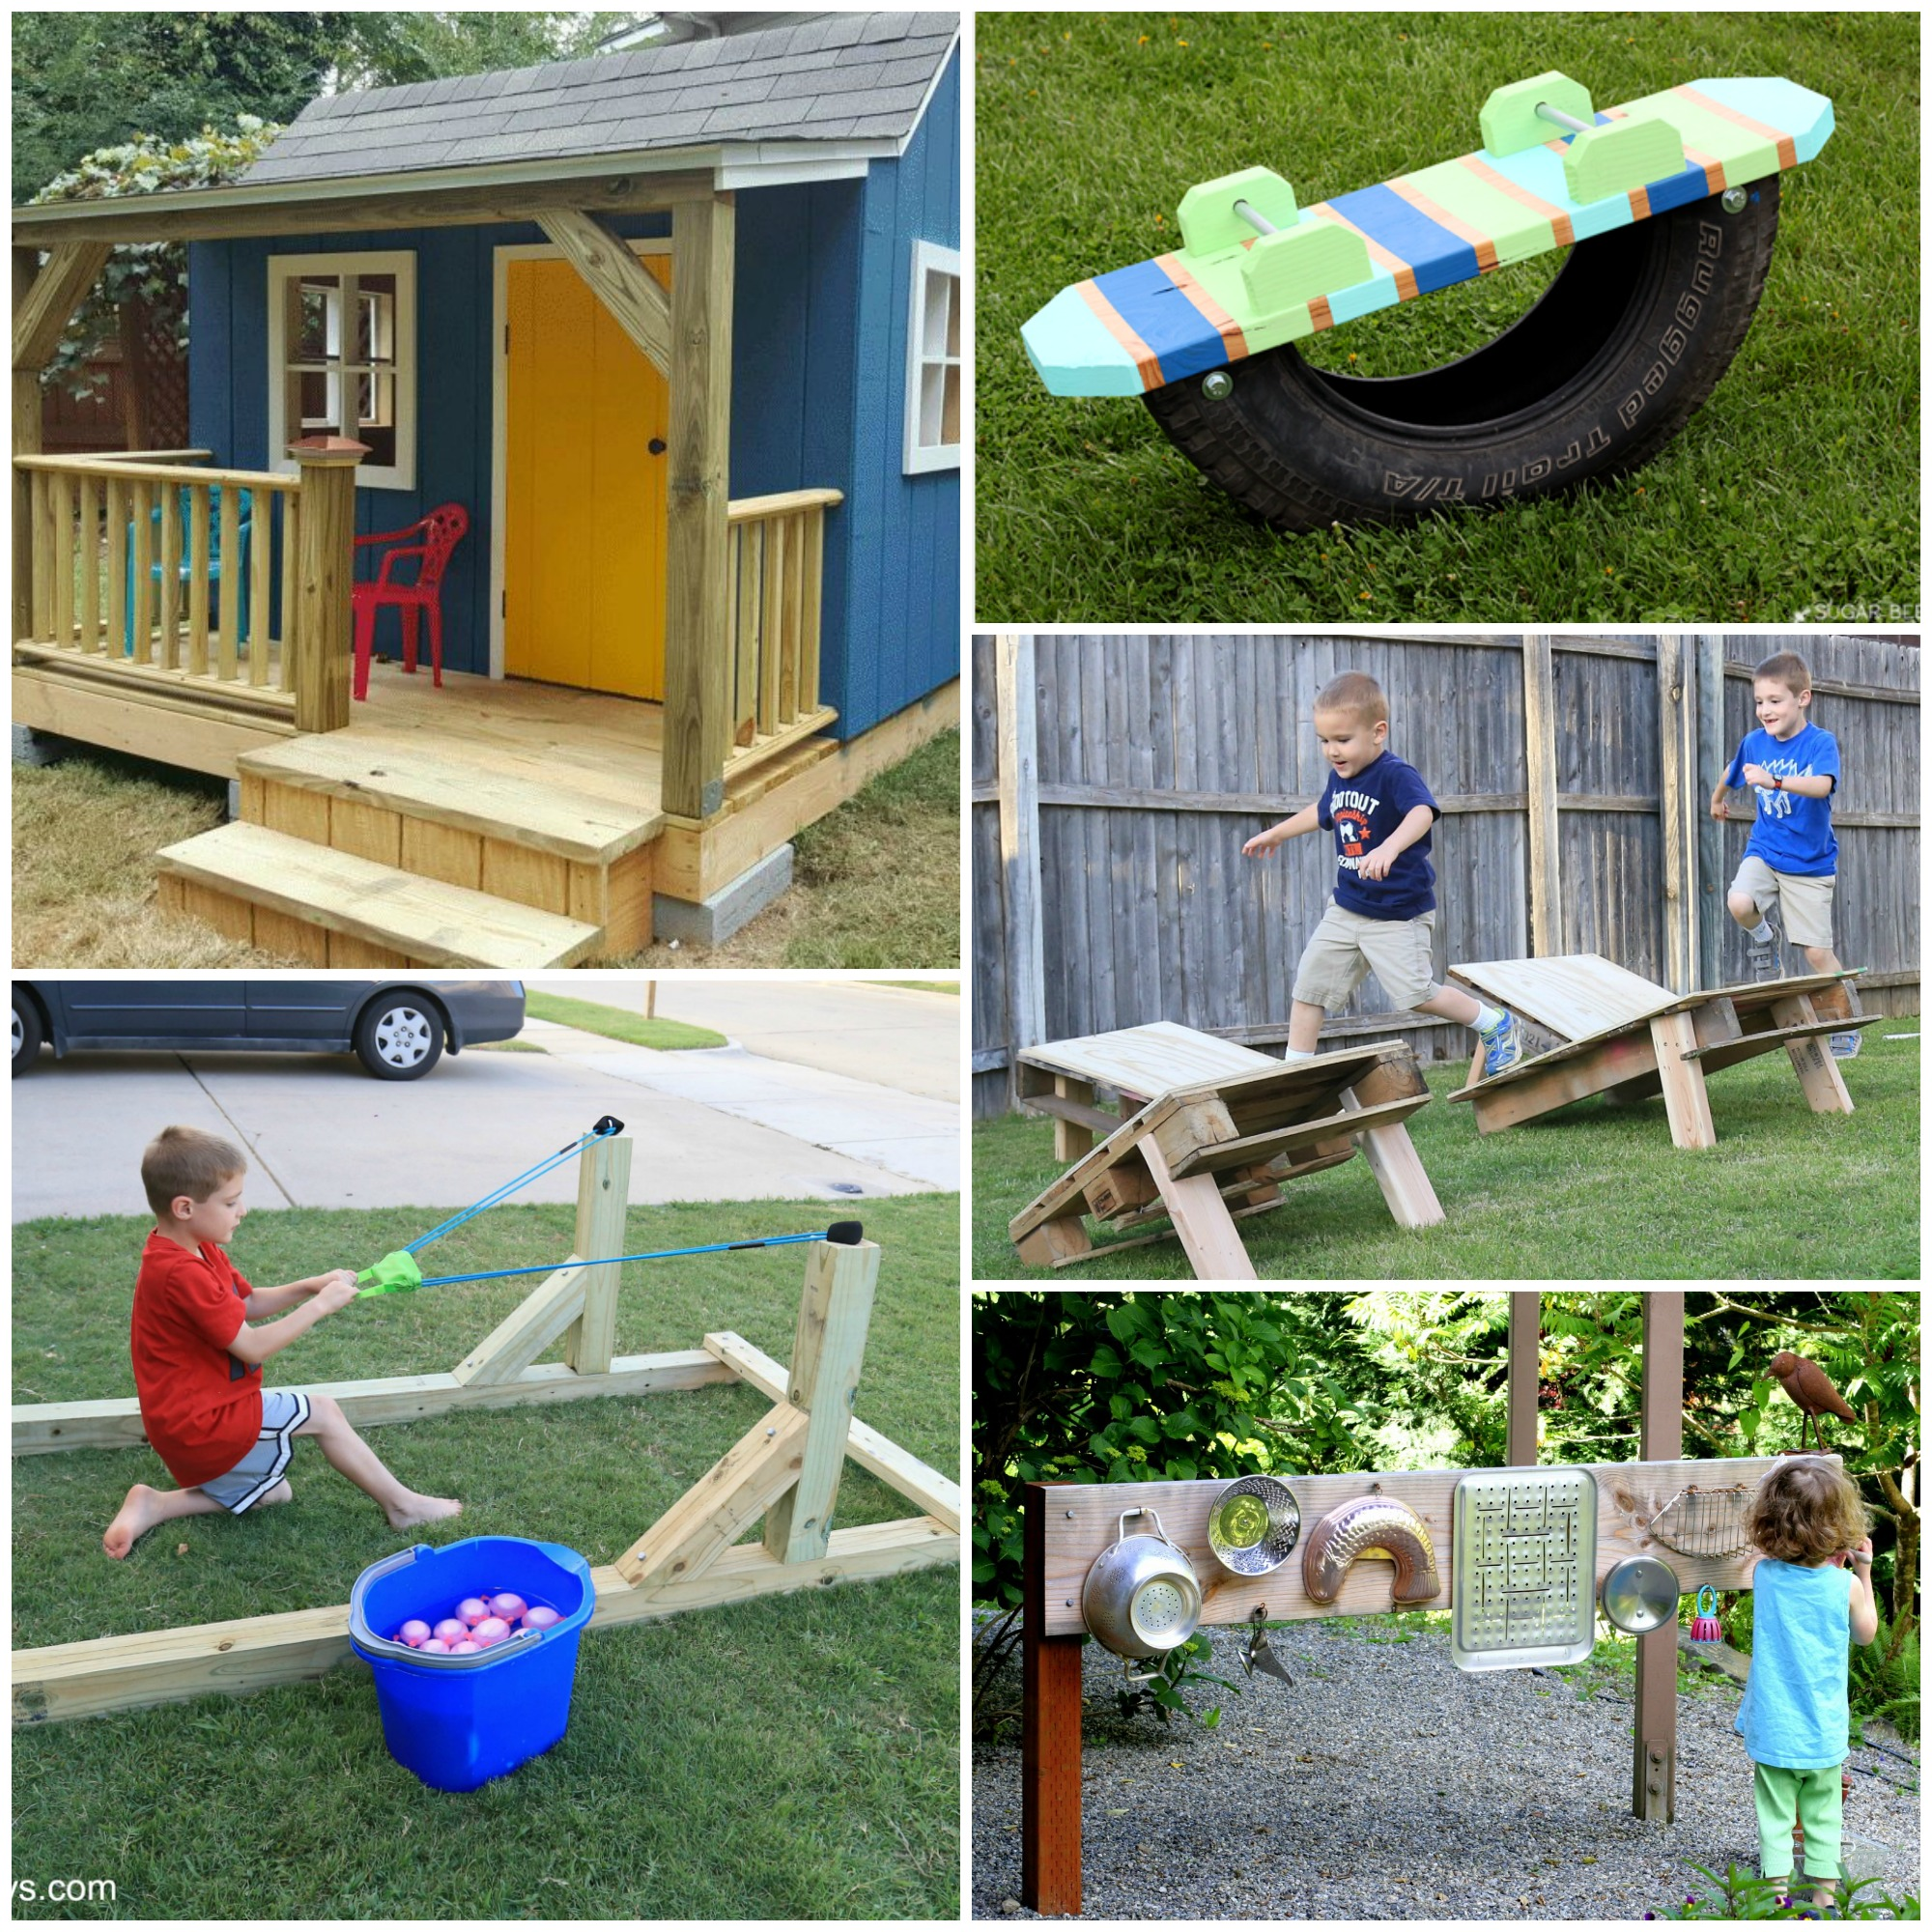 25 Awesome Backyard Play Spaces to Make